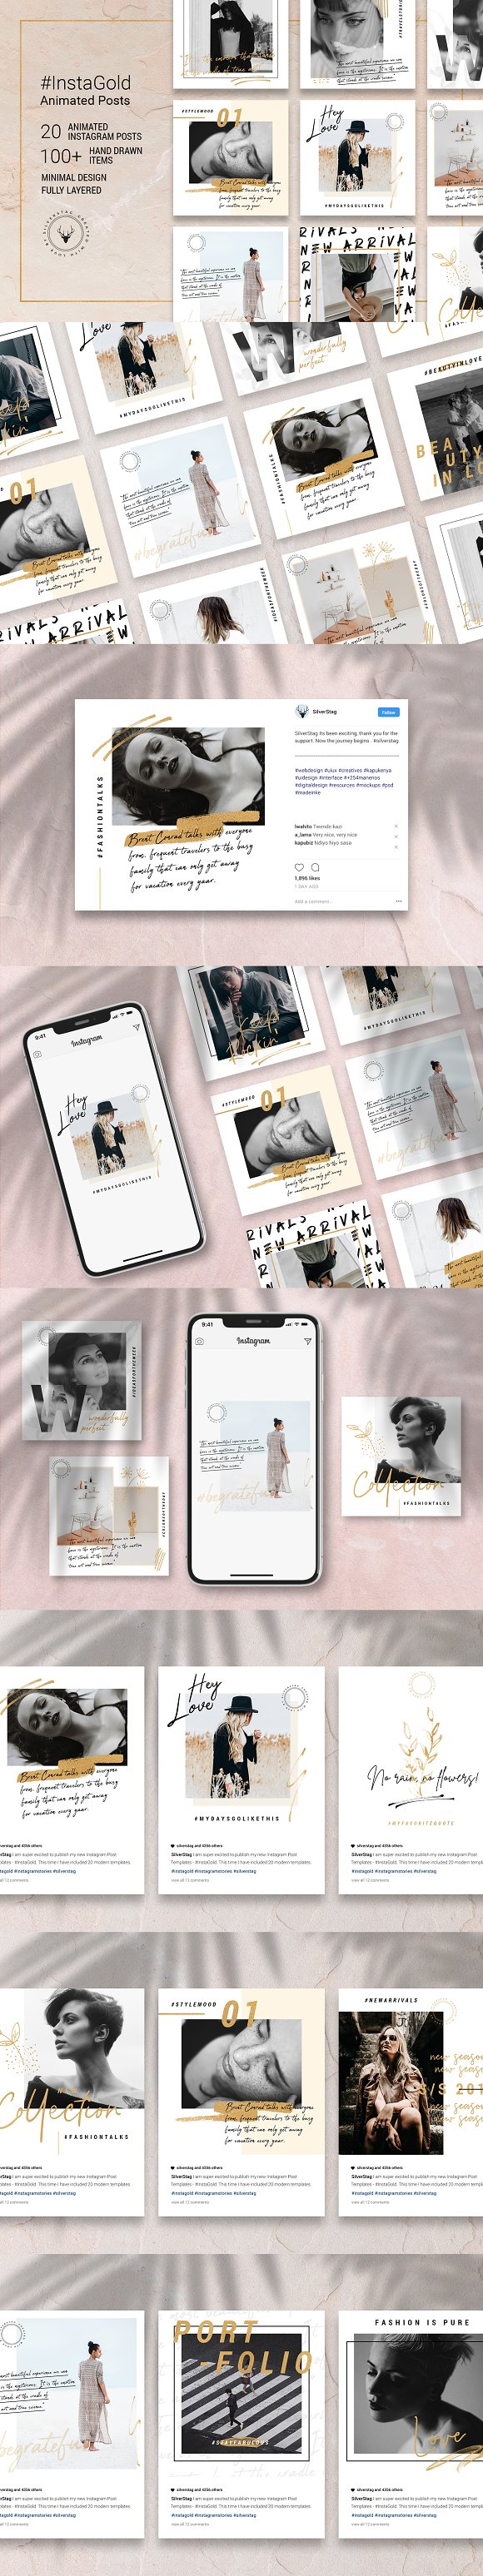 Ultimate Instagram Bundle + Updates in Instagram Templates - product preview 6